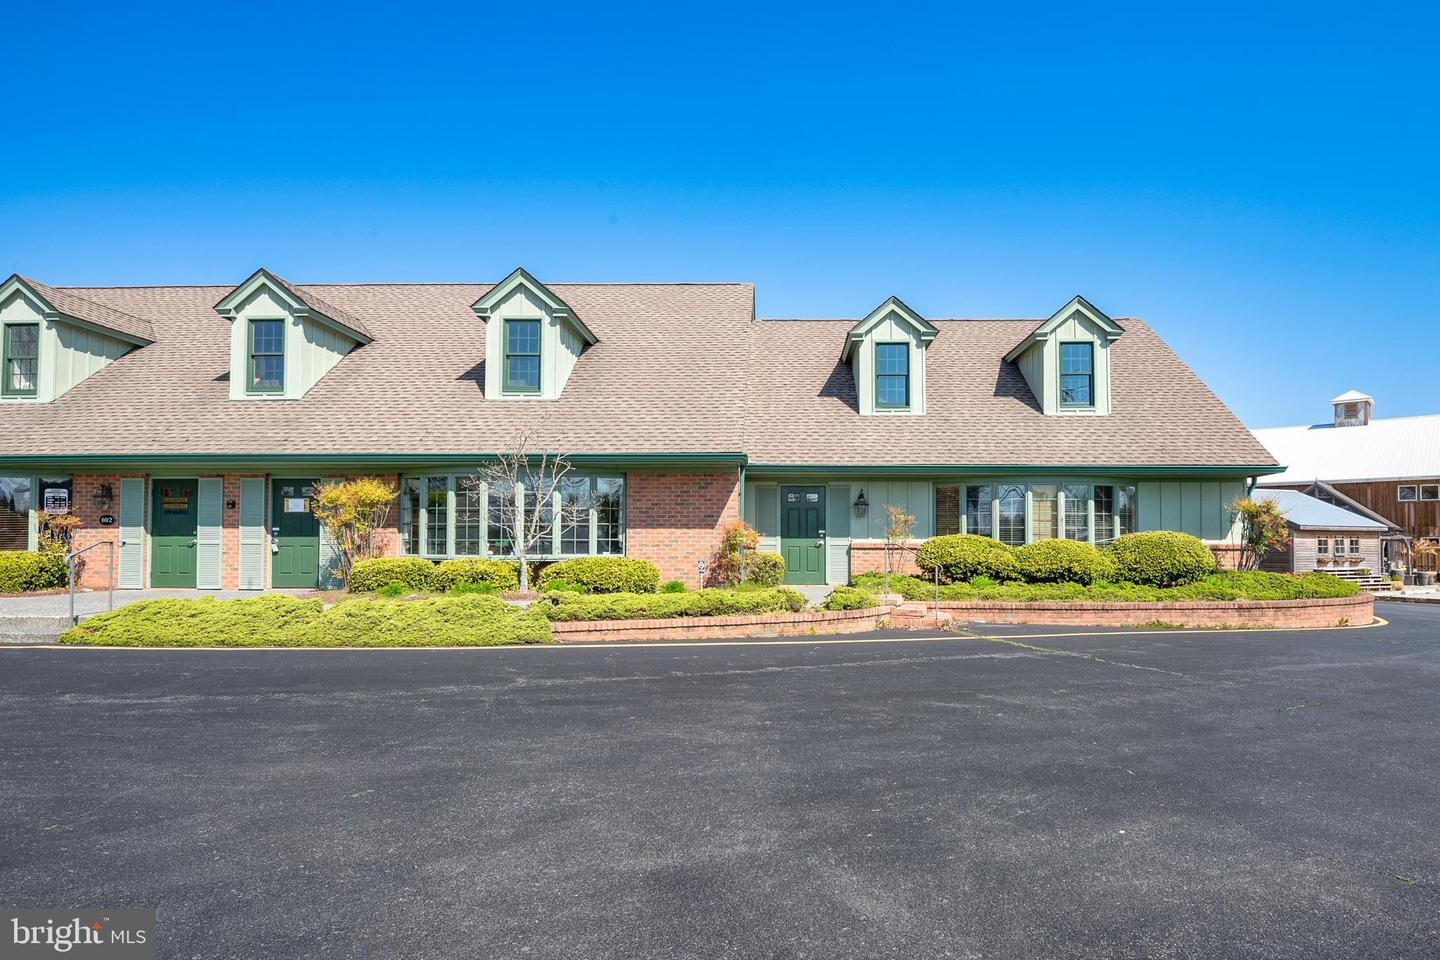 DESU152940-304103035535-2020-07-09-17-38-43 750 Kings Hwy #3 & 4 | Lewes, DE Real Estate For Sale | MLS# Desu152940  - Coldwell Banker Resort Realty